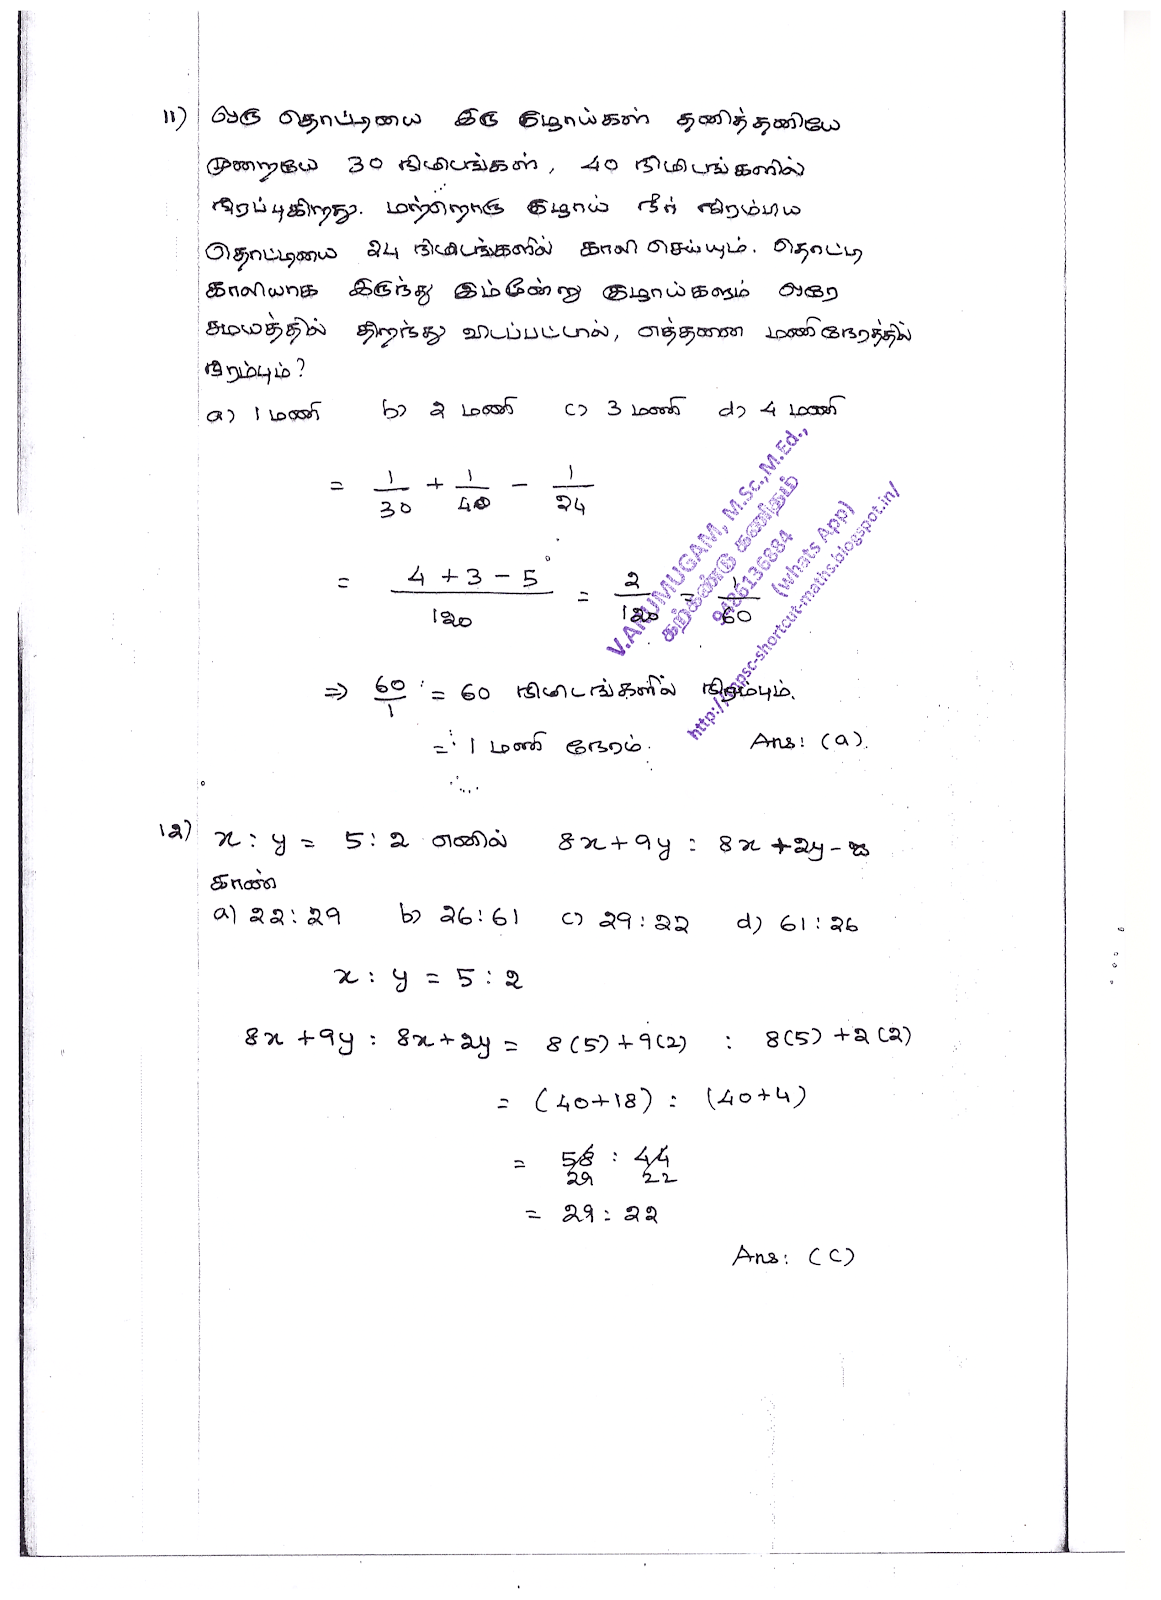 TNPSC-2018-Q-09-Agricultural Officer (Extension) in TN Agricultural Extension Service Exam-EXAM DATE: 14.07.2018